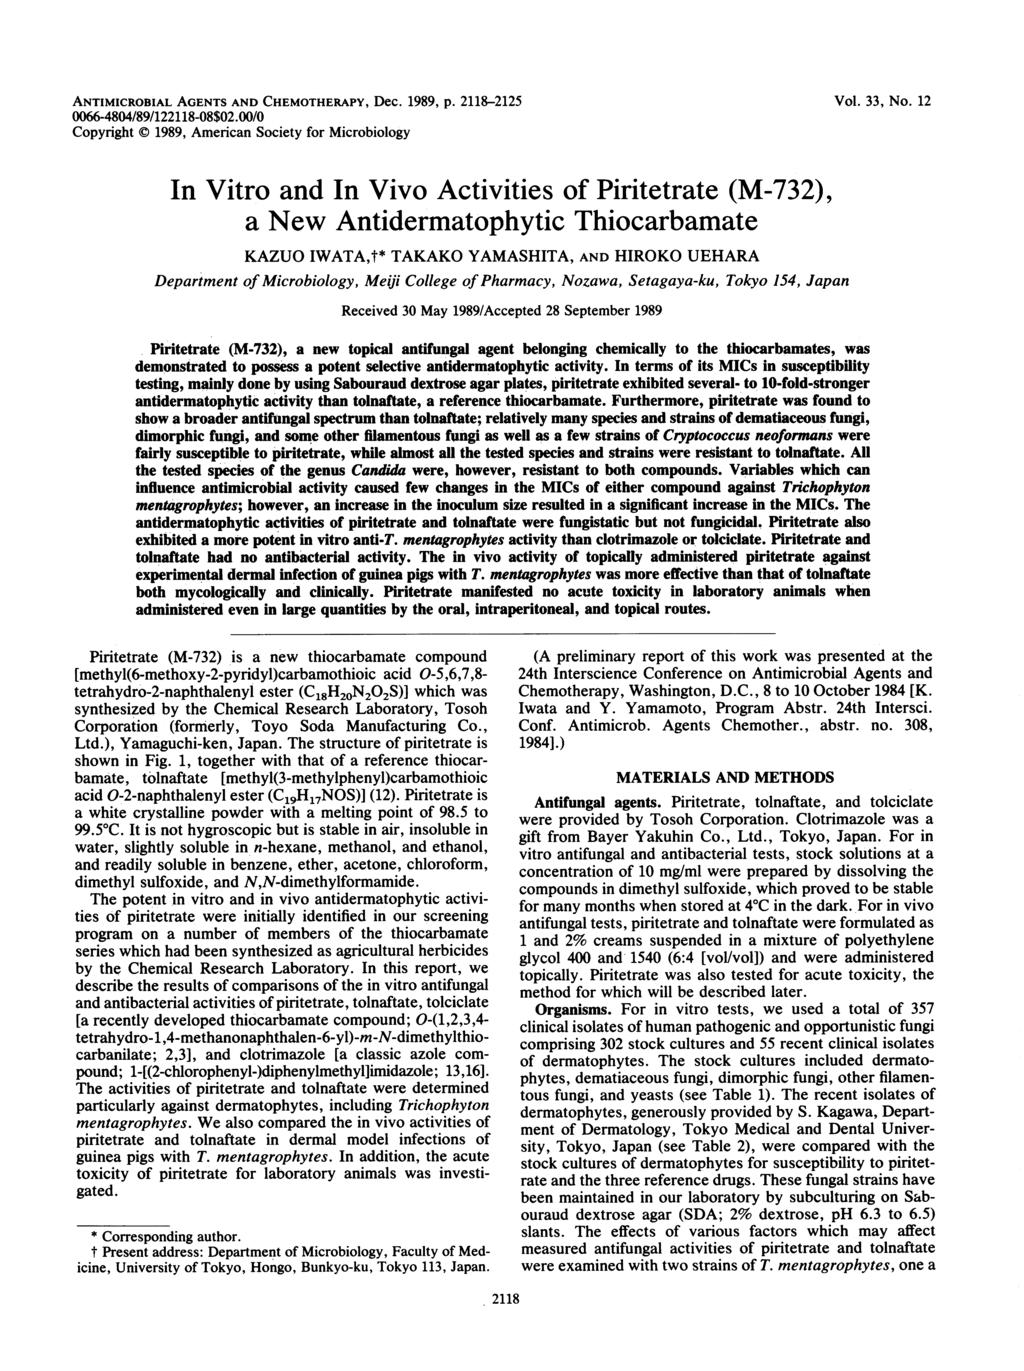 ANTIMICROBIAL AGENTS AND CHEMOTHERAPY, Dec. 1989, p. 2118-2125 Vol. 33, No. 12 0066-4804/89/122118-08$02.